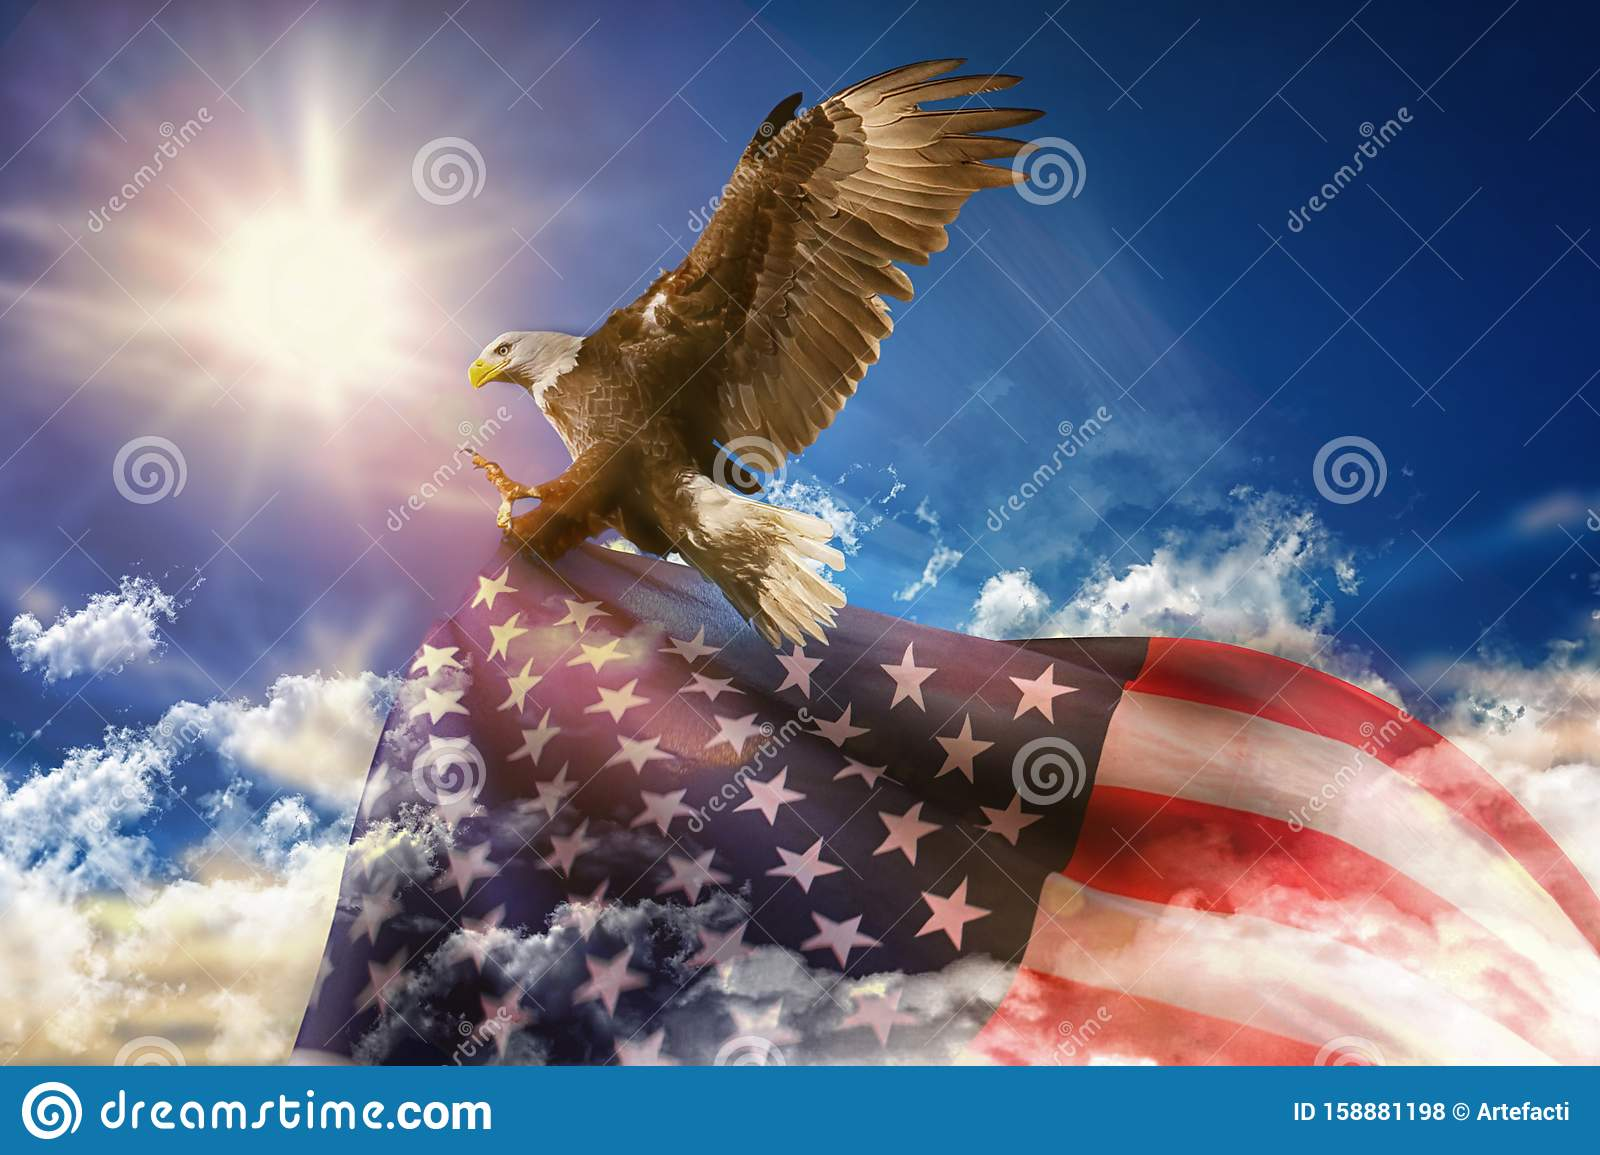 117 145 Eagle Photos Free Royalty Free Stock Photos From Dreamstime